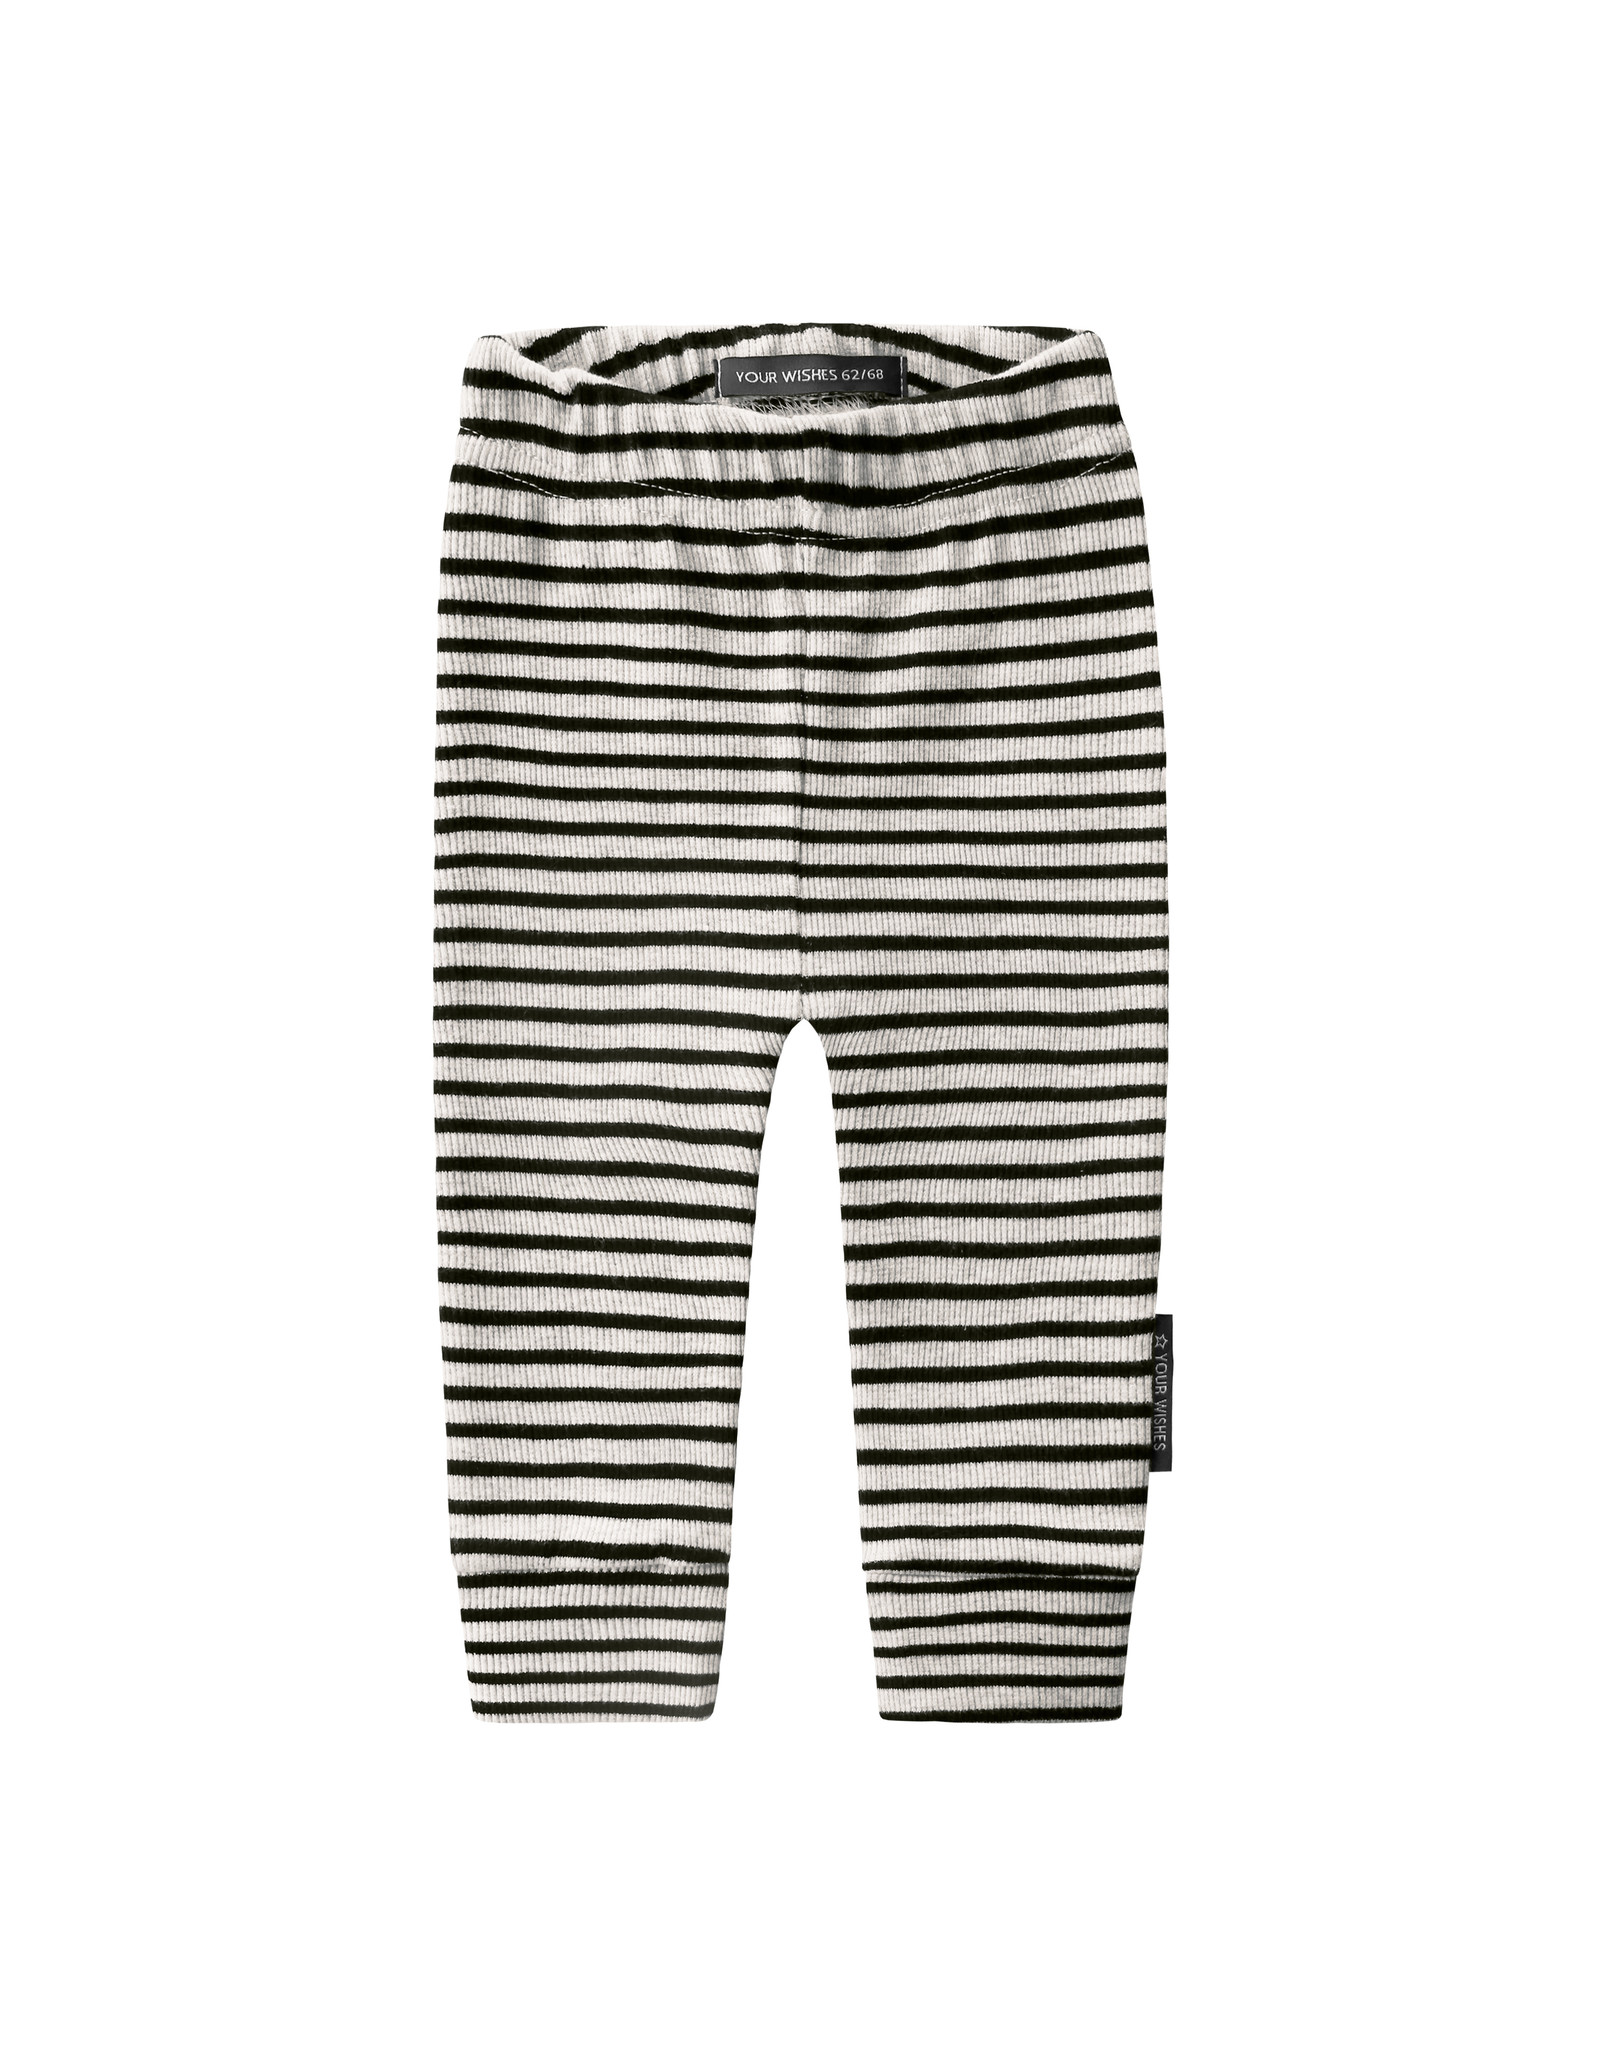 Your Wishes Beige - Stripes | Fitted Pants, Chalk